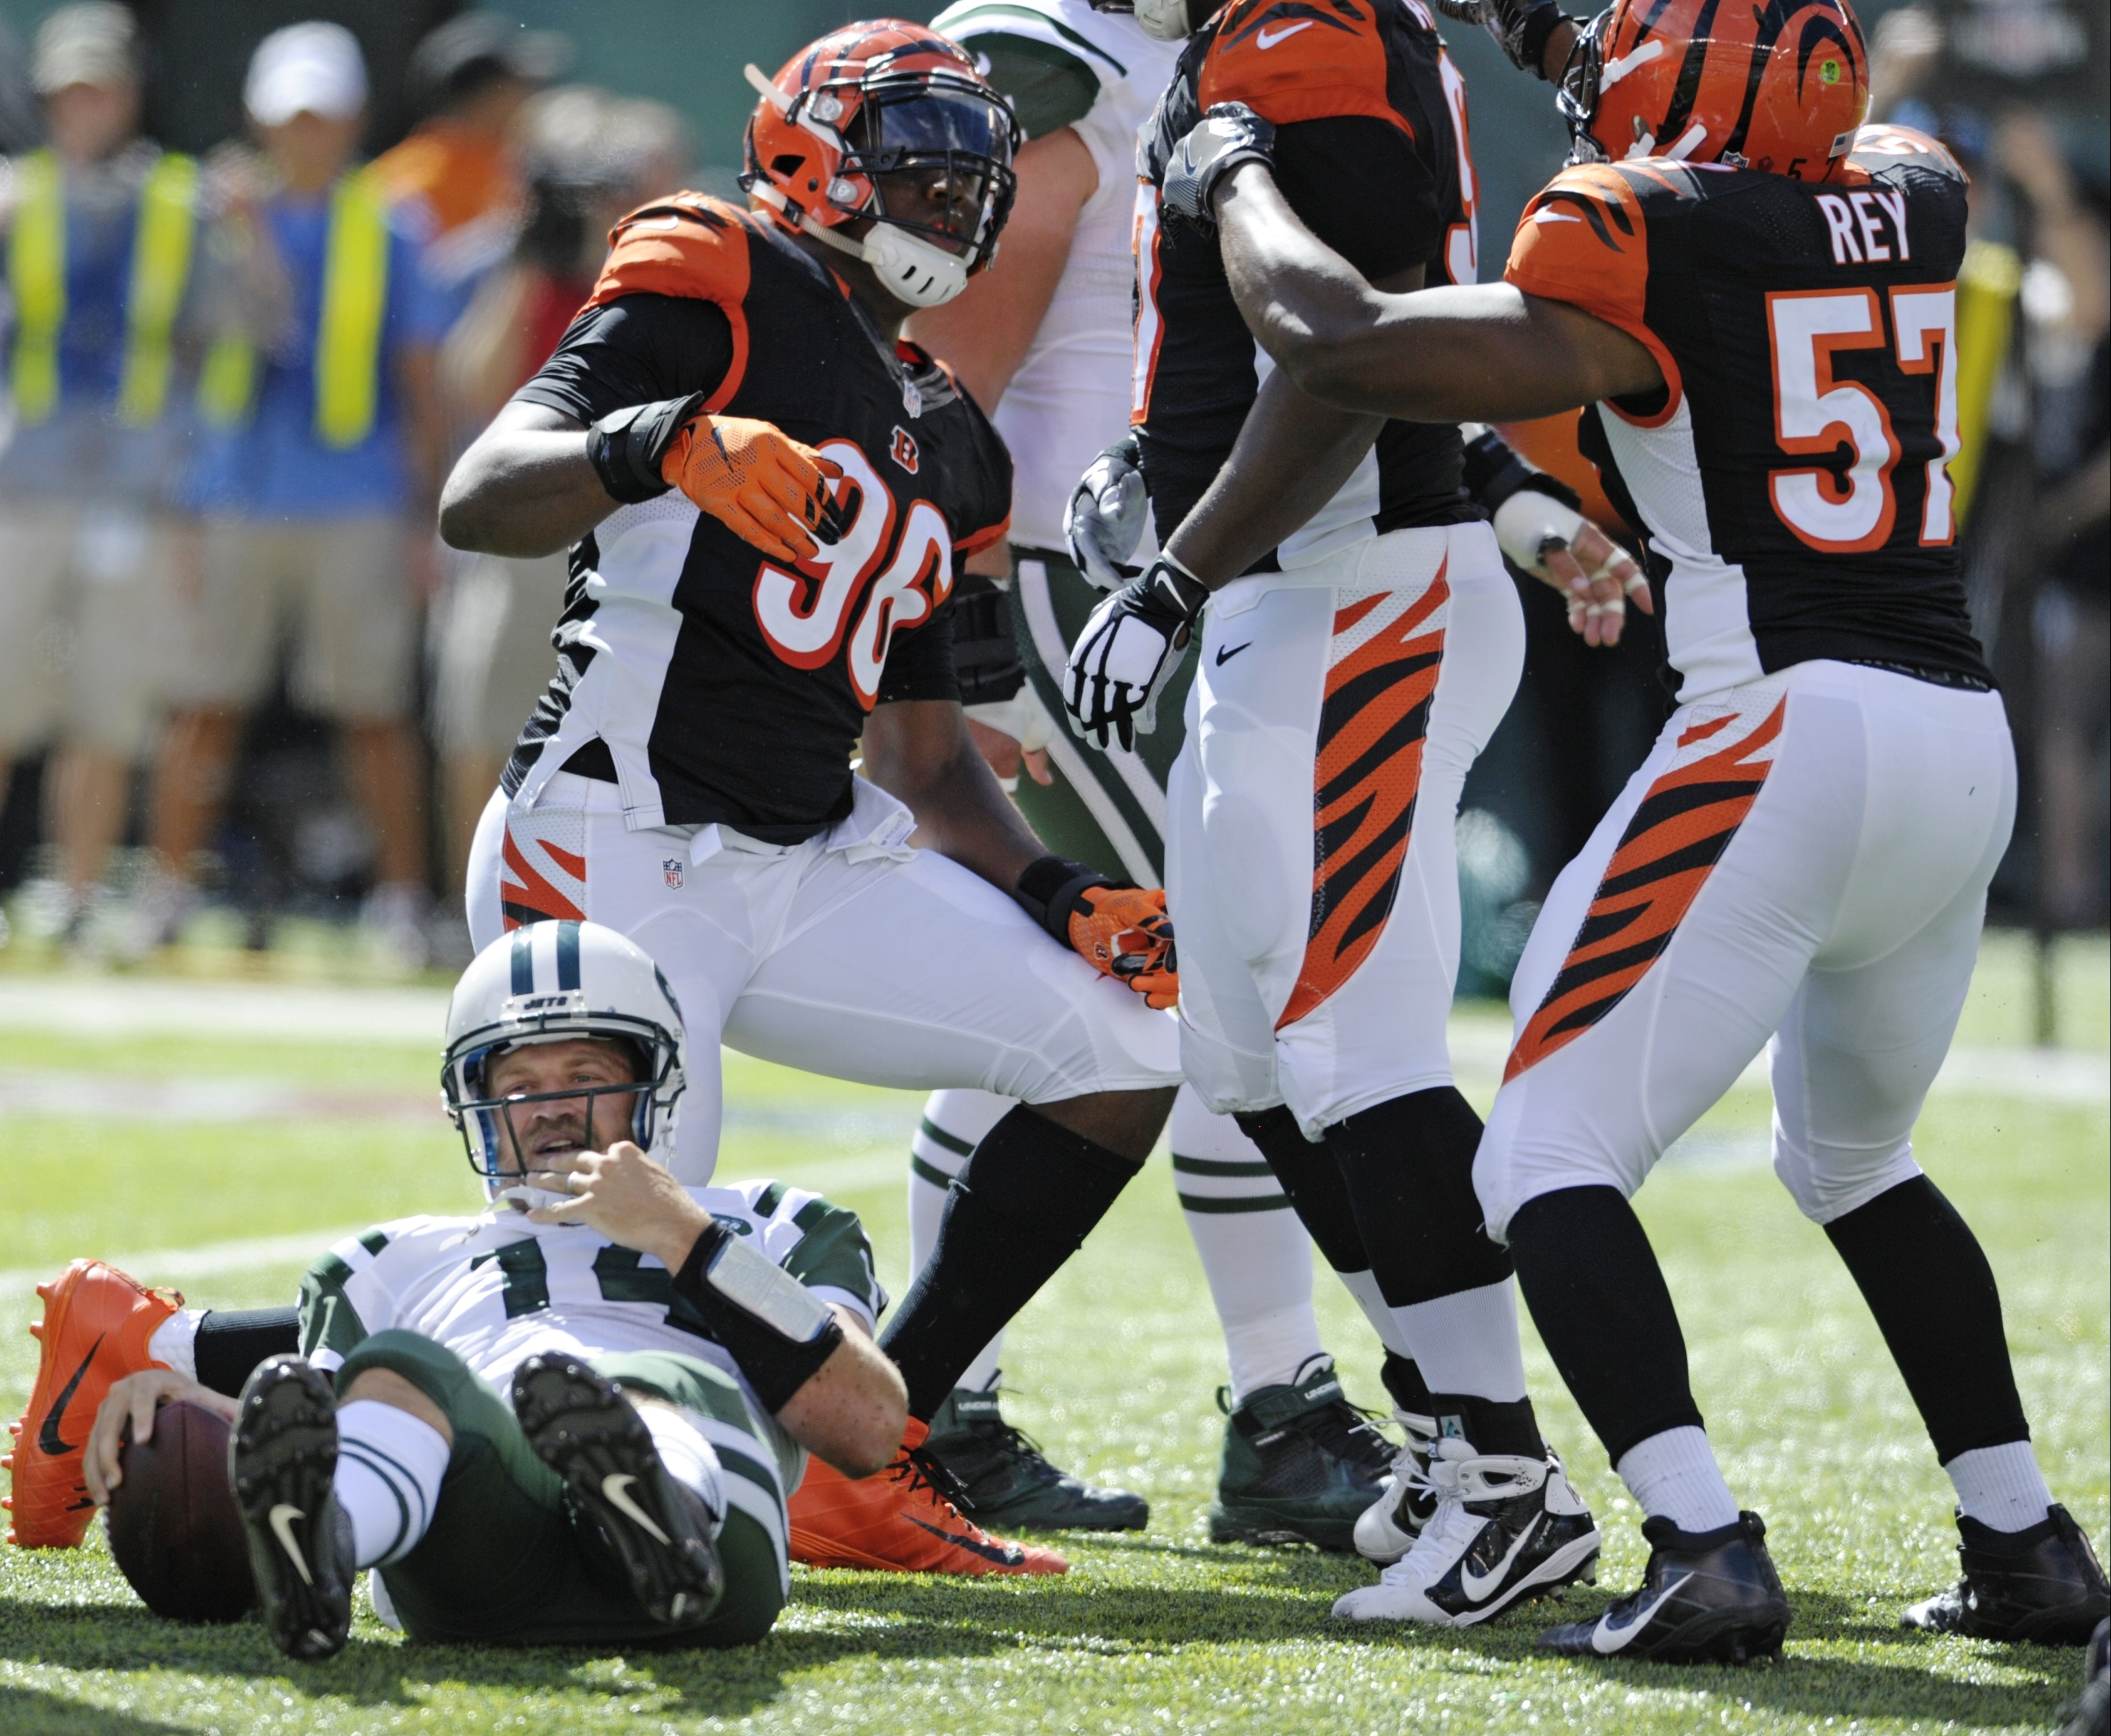 New York Jets quarterback Ryan Fitzpatrick (14) gets up after being sacked as Cincinnati Bengals' Carlos Dunlap (96) celebrates with teammates Geno Atkins, center, and Vincent Rey, (57) during the second half of an NFL football game Sunday, Sept. 11, 2016